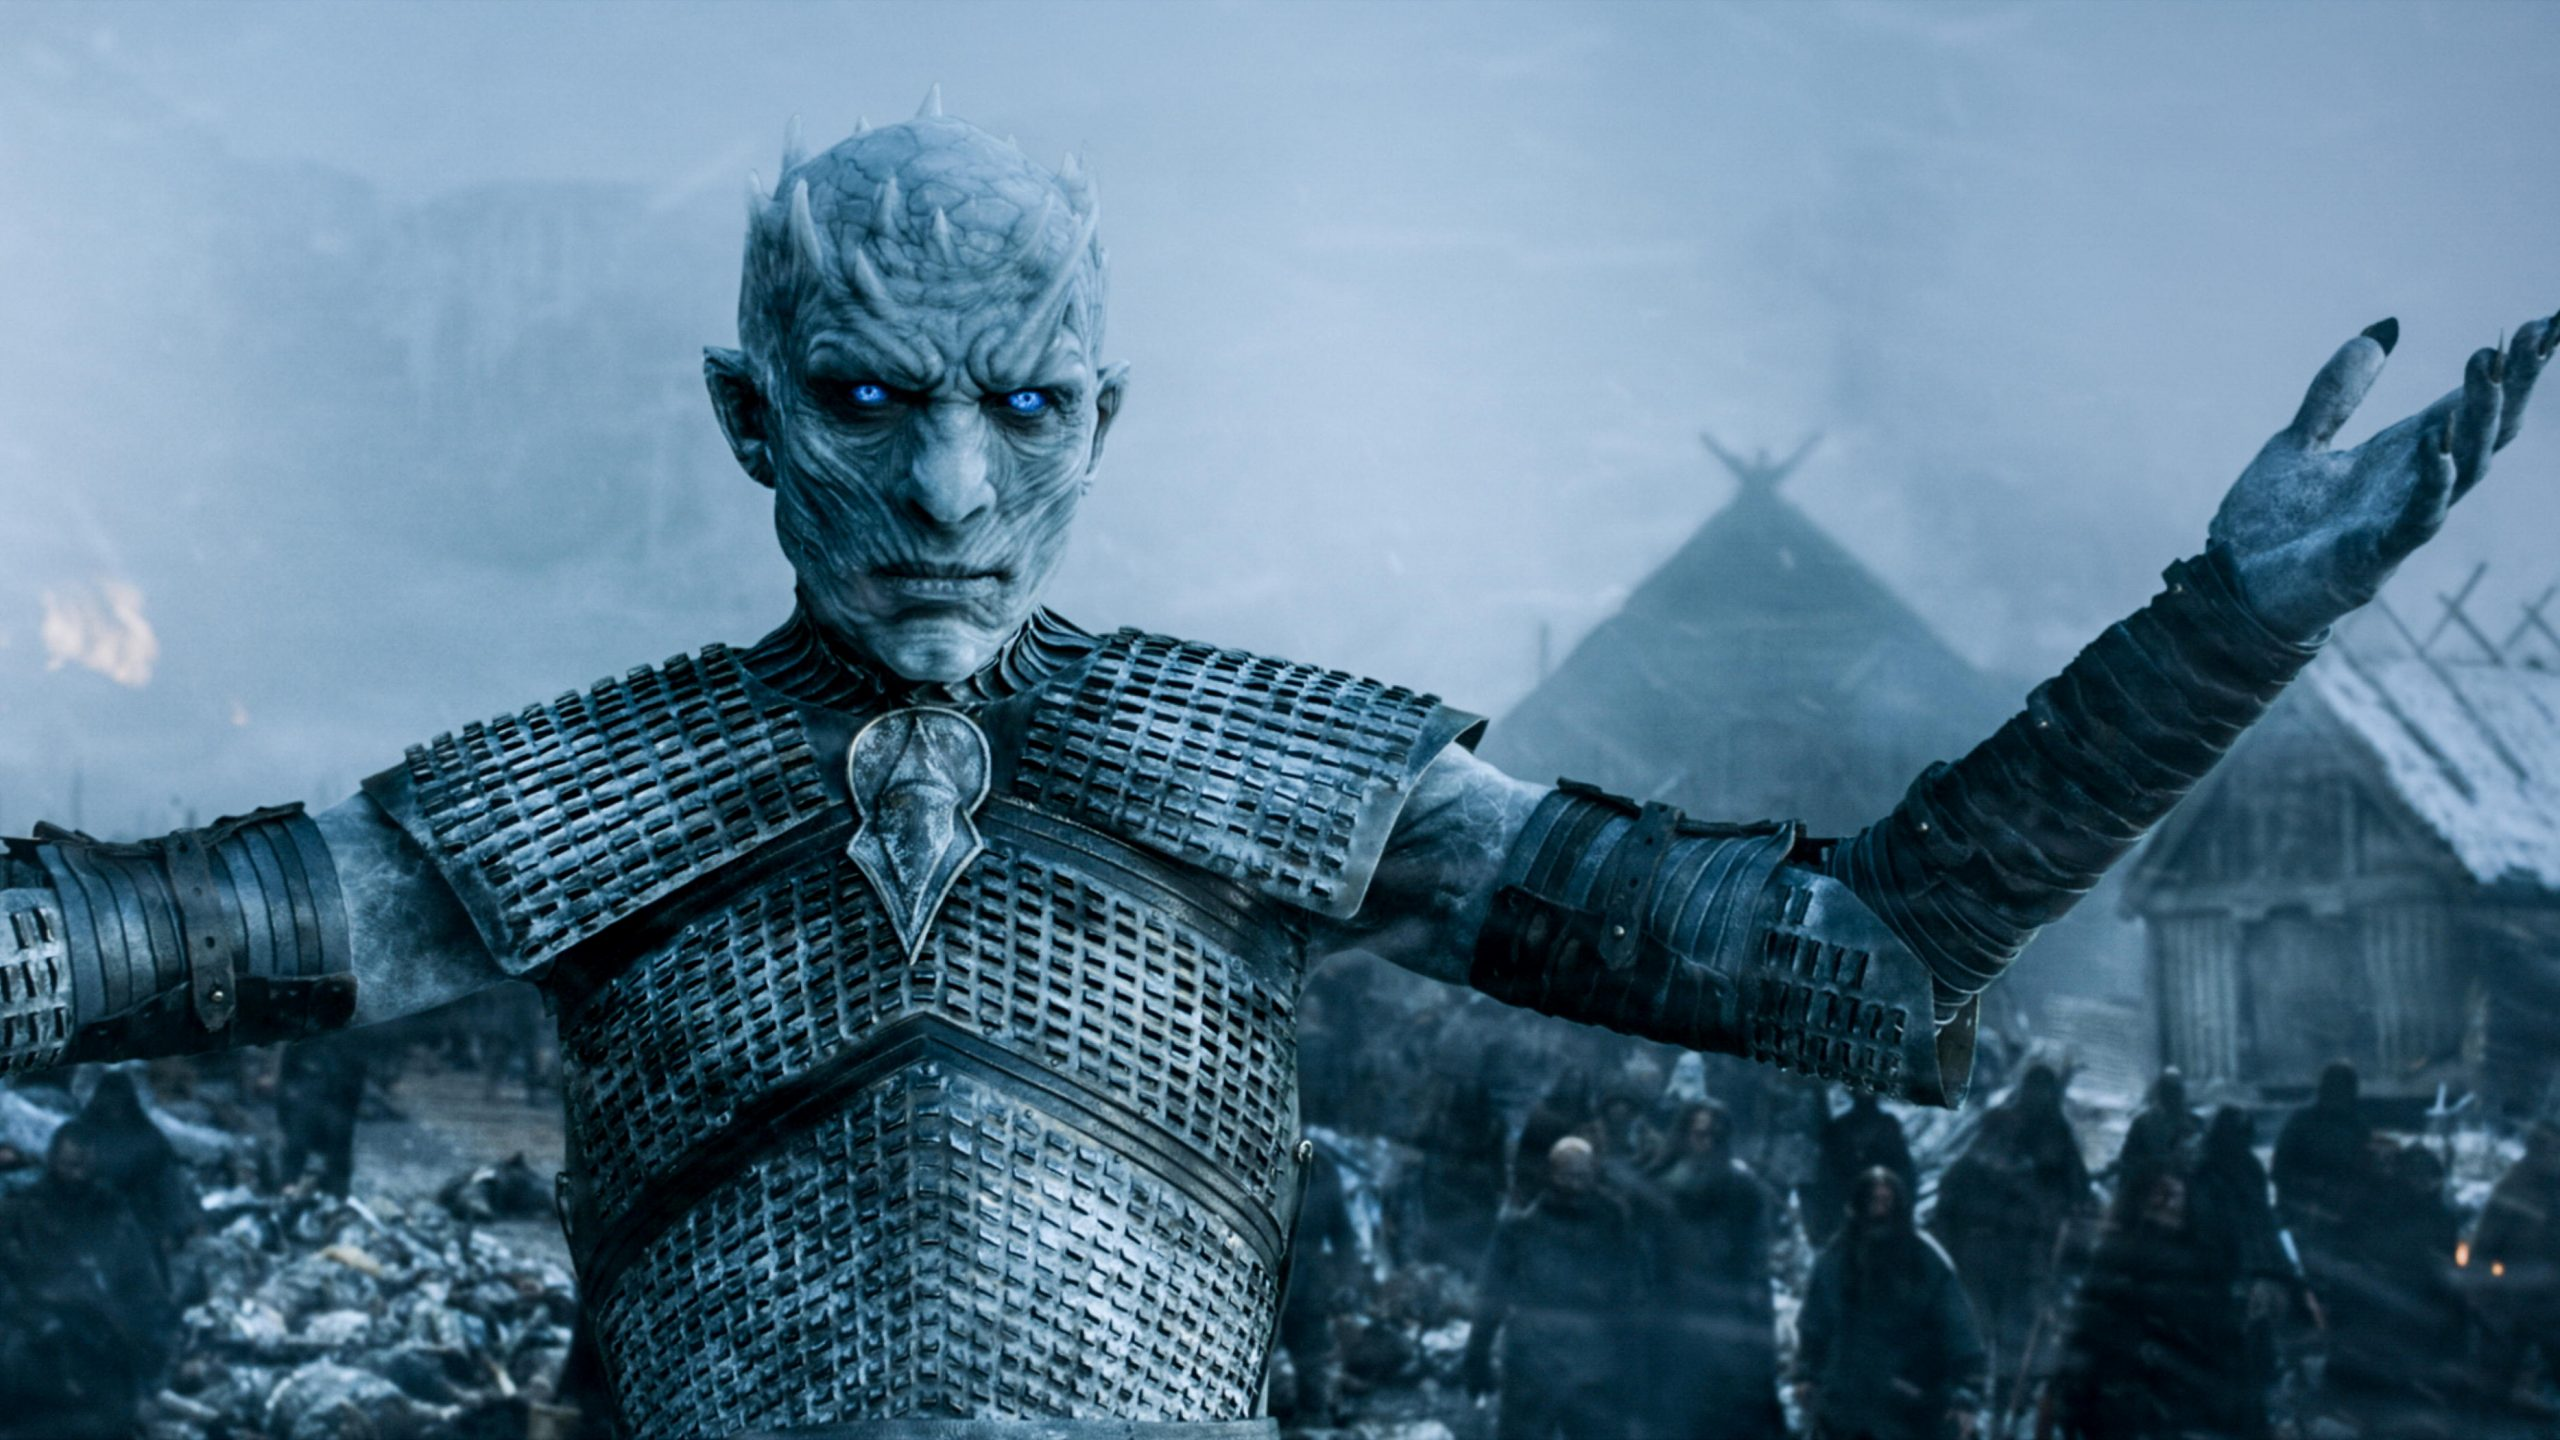 Defend yourself from the White Walkers, and lingering questions, at the<i> Game of Thrones</i> wrap party at DANK Haus Wednesday 8/30.